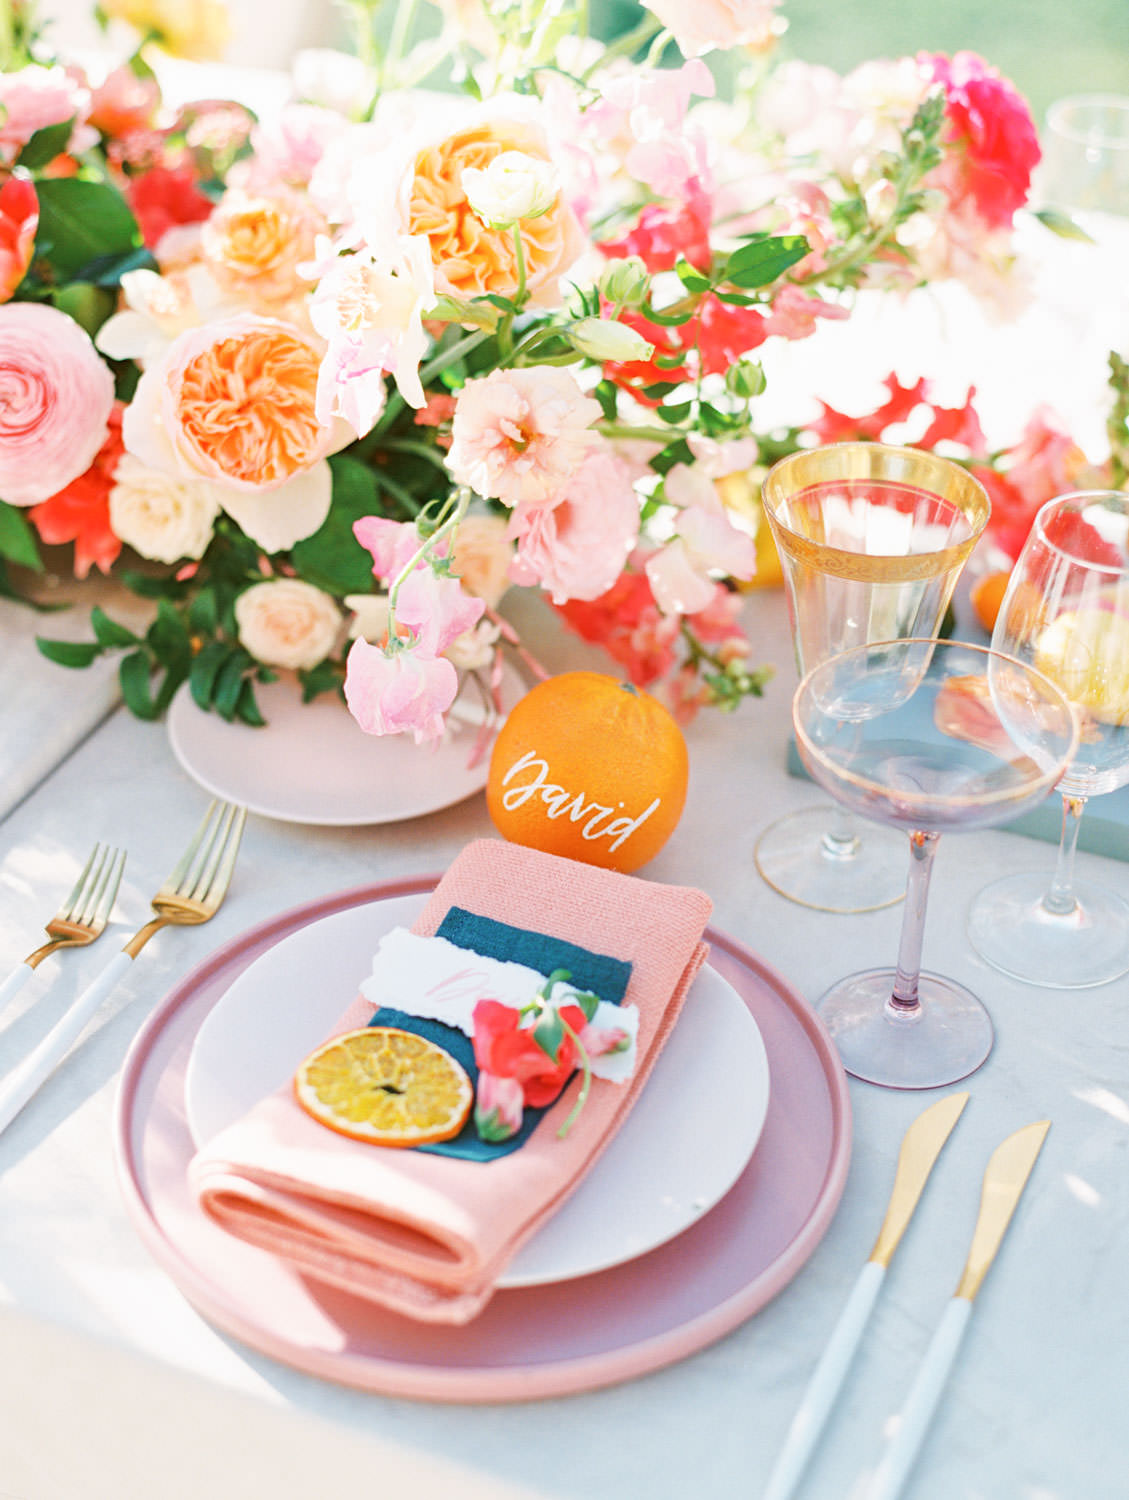 Al fresco reception with table covered in ivory velvet linen. Orange fruit escort card. Mauve charger, soft blush plates, coral napkin with grey cloth square on top and hand torn calligraphy place card. Gold flatware with white handles, pink taper candles in hurricanes, and centerpiece with ivory, peach, pink, yellow, and green roses, ranunculus, daffodils, sweet peas, and peonies.. A Wedding Photographer's Fairmont Grand Del Mar Wedding